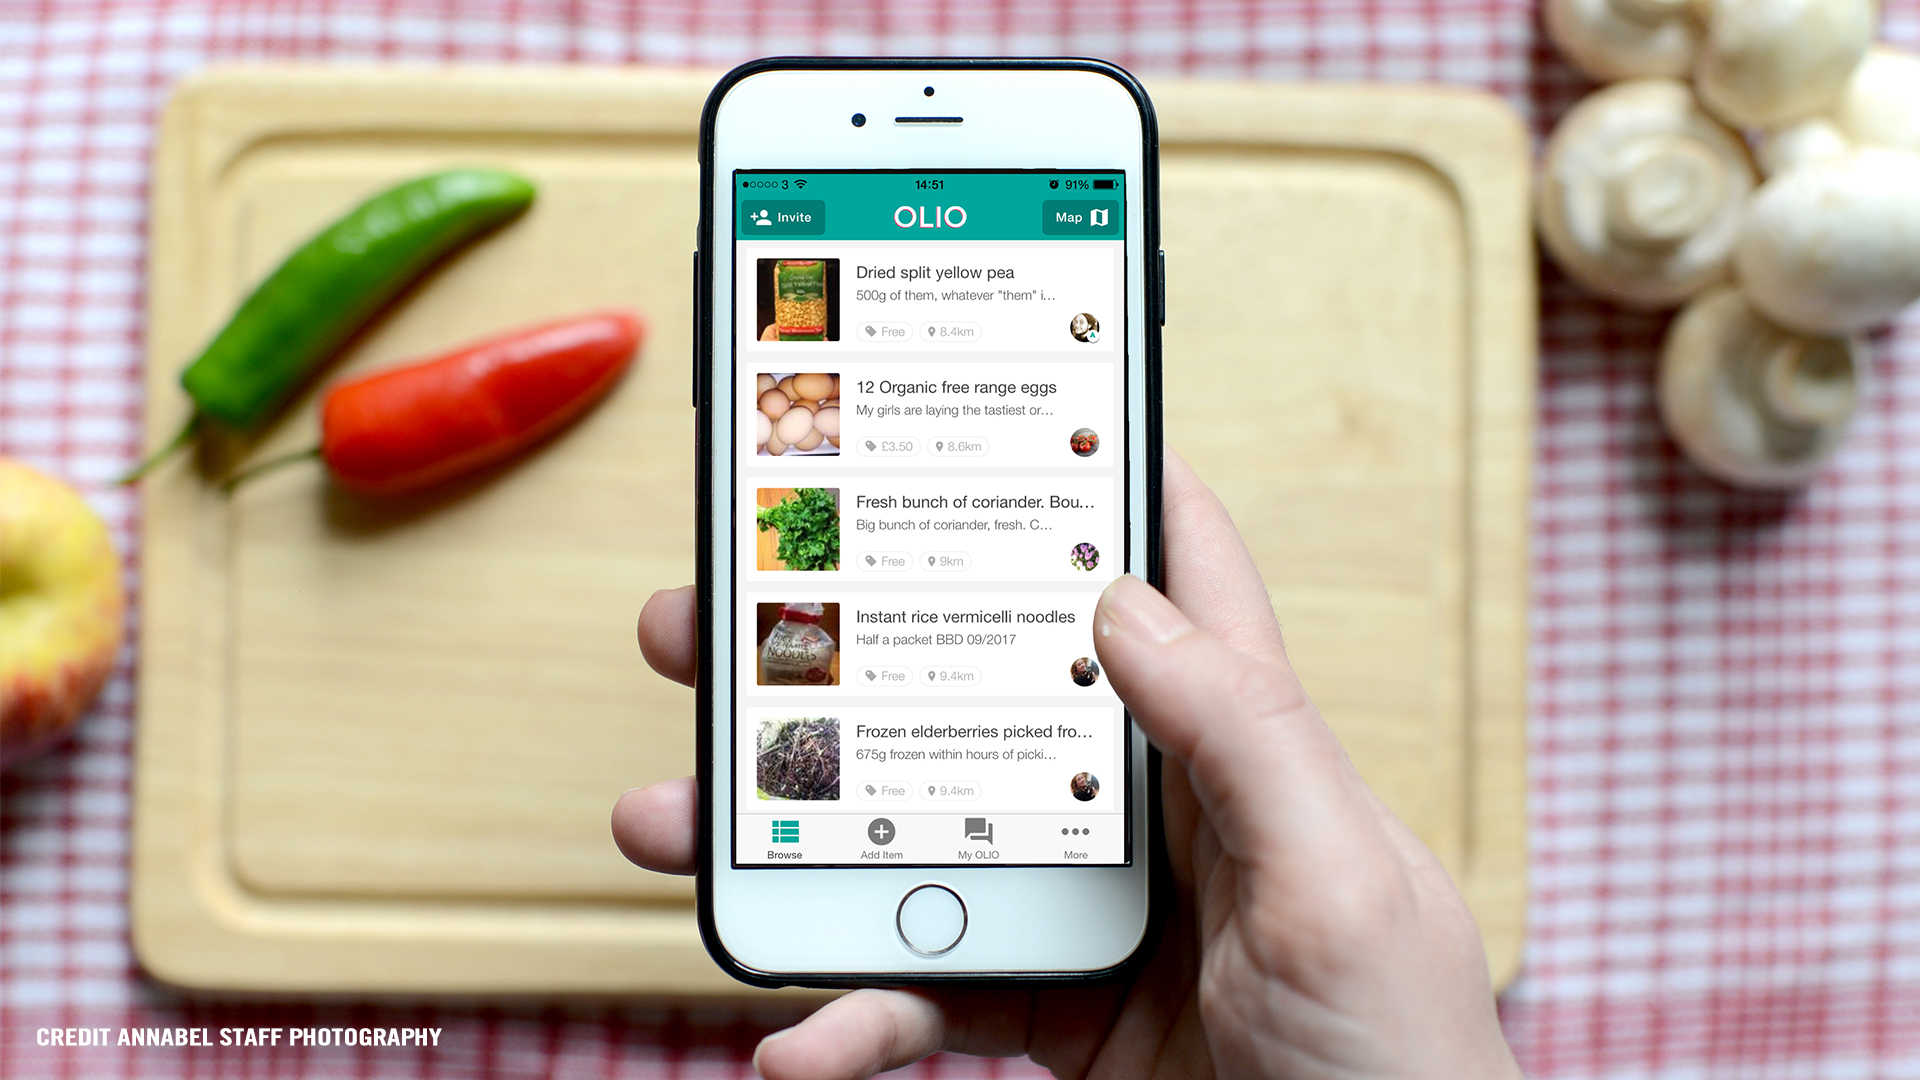 OLIO   We'd like to think that bit by bit we are all making changes in order to improve our planet not only for us but for future generations. We've seen a surge in awareness around the use of plastic, veganism increasing in popularity and now we bring you  Olio , an app that aims to connect neighbours with each other and with local shops so surplus food and other items can be shared, not thrown away. Food wastage is a huge problem and we can all do our bit to minimise this. Individuals and businesses can both join the Olio scheme and it could be to share food nearing its sell-by date in local stores, spare home-grown vegetables, bread from your baker, or the groceries in your fridge when you go away. You upload details of the item to the app and share away. The team behind Olio 'believe that small actions can lead to big change. Collectively – one rescued cupcake, carrot or bottle of lotion at a time – we can build a more sustainable future where our most precious resources are shared, not thrown away'. So download the app and share away!  Facebook  |  Instagram  |  Twitter